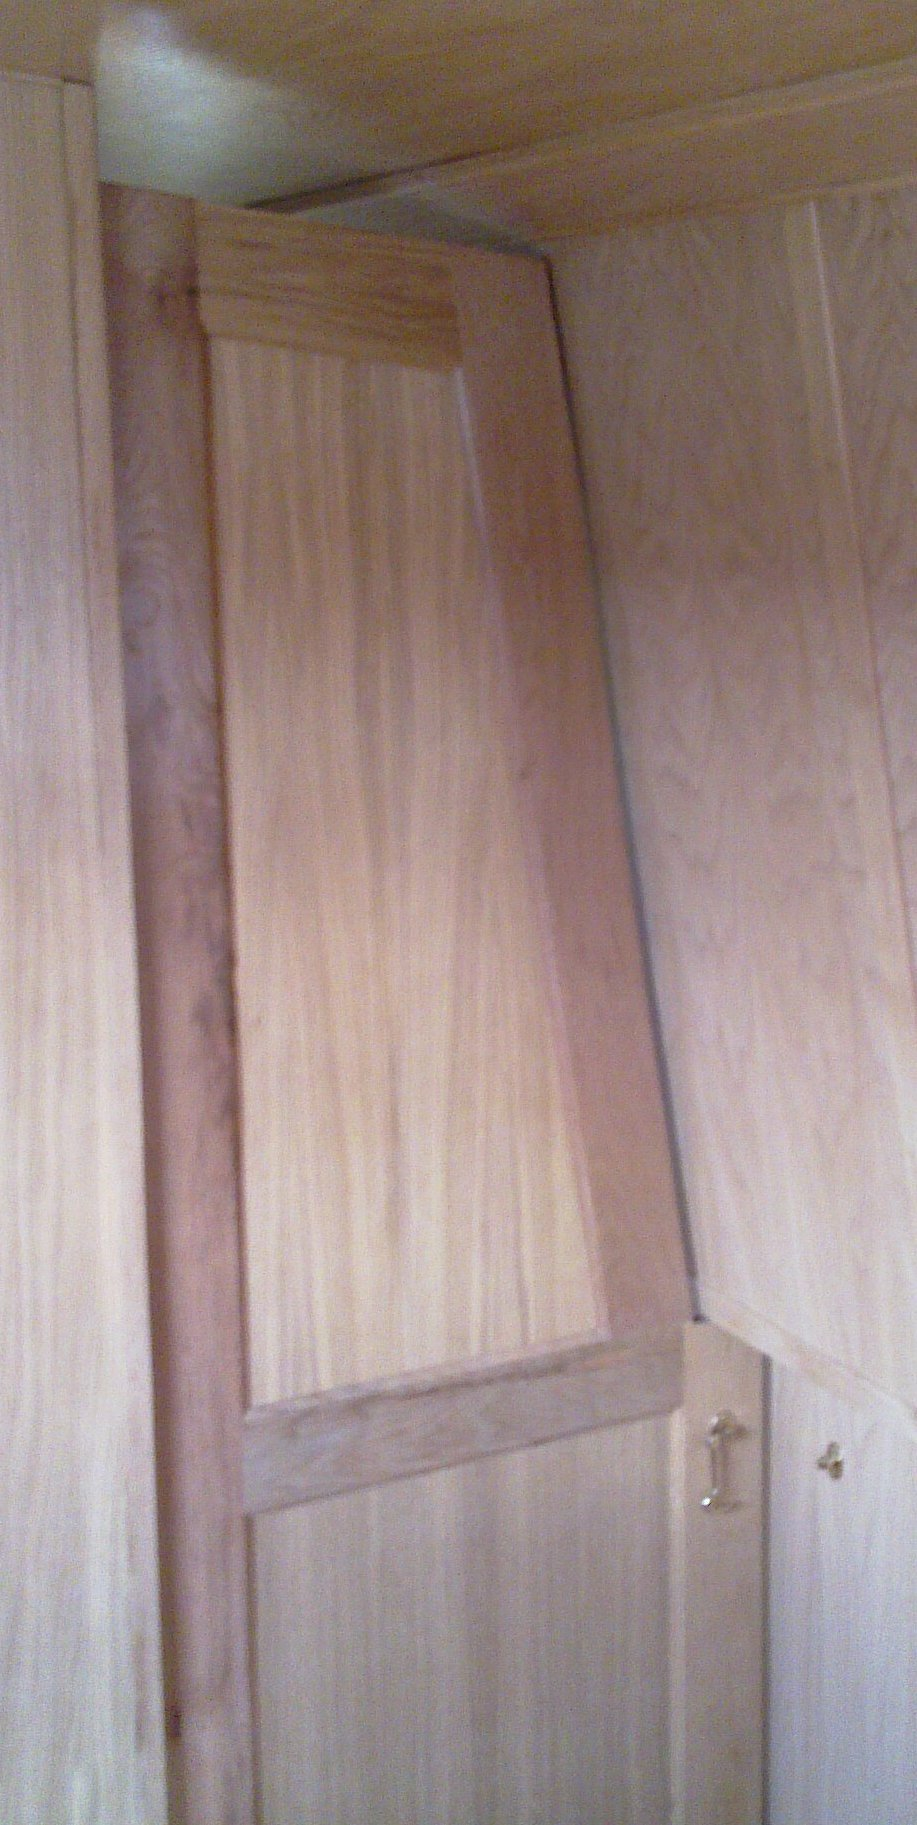 DIVIDER SHAPED DOOR 1- OAK.jpg